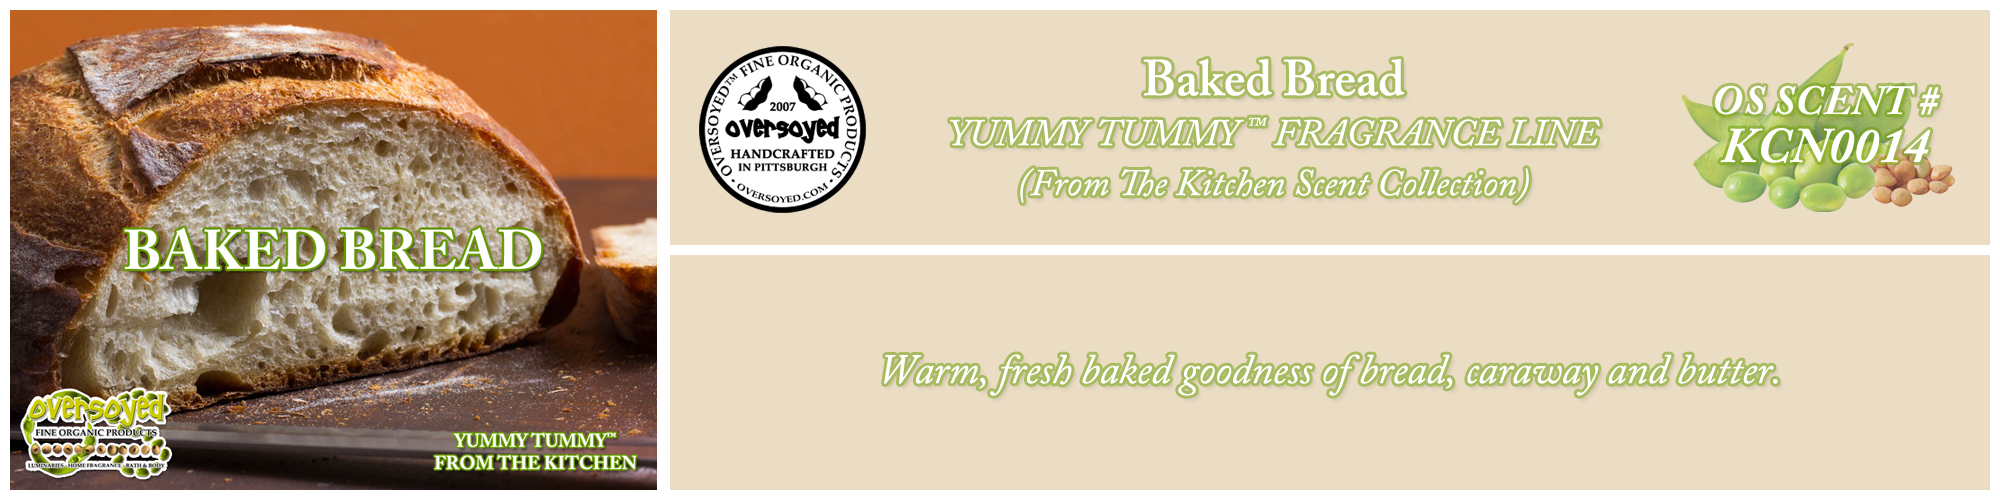 Baked Bread Handcrafted Products Collection